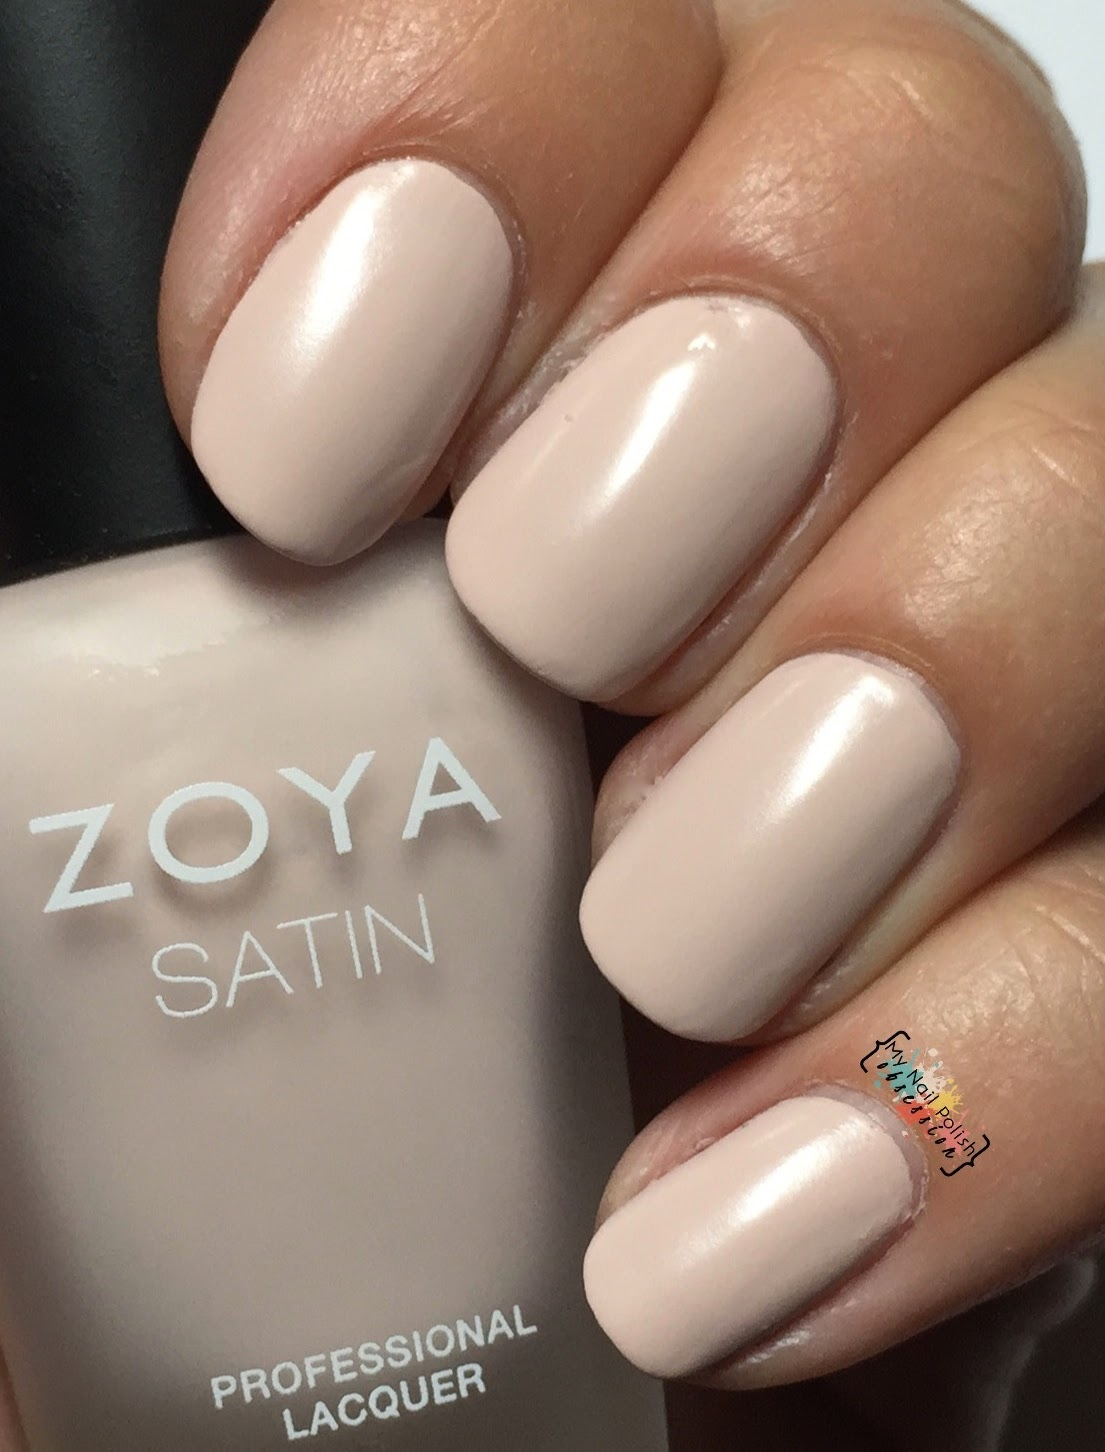 My Nail Polish Obsession: Zoya Naturel Satin Collection